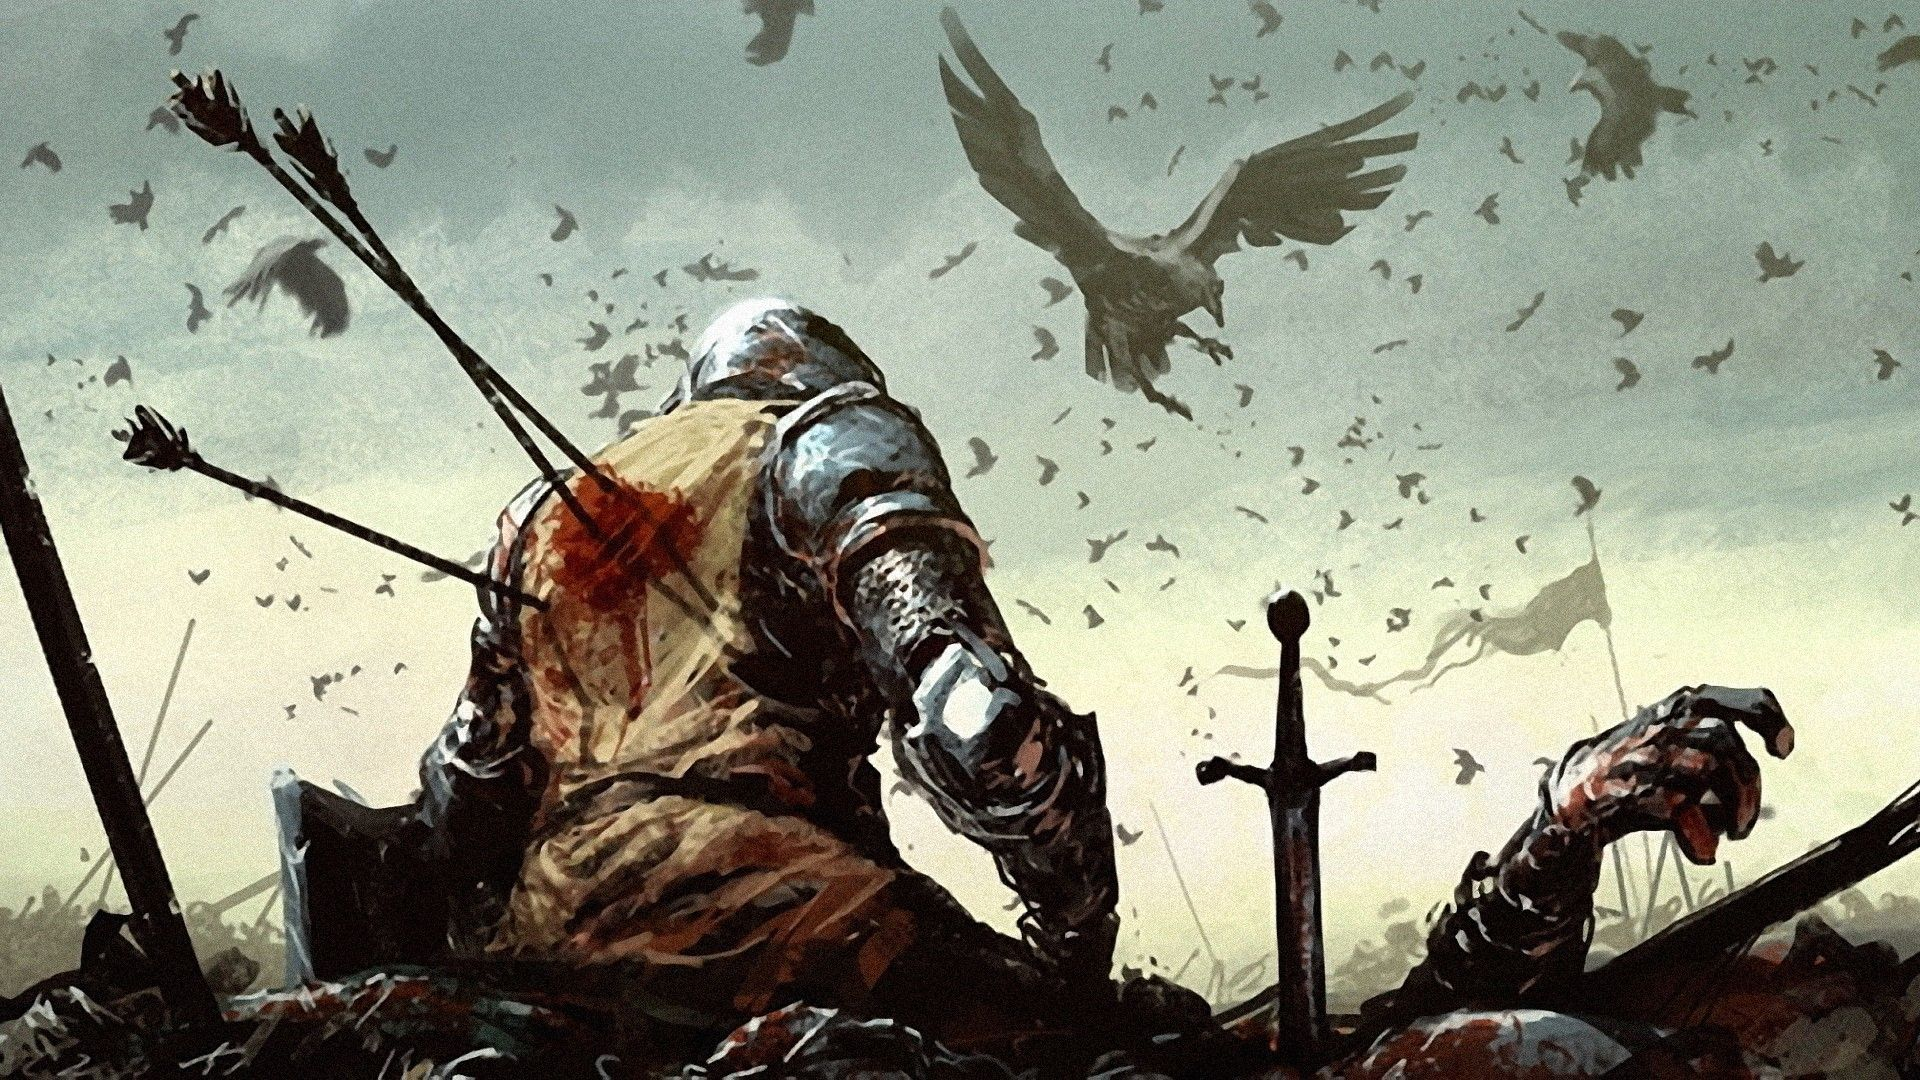 4598915-soldier-warrior-knight-artwork-arrows-death-crow-chaos-painting-war-fantasy-art-blood.jpg